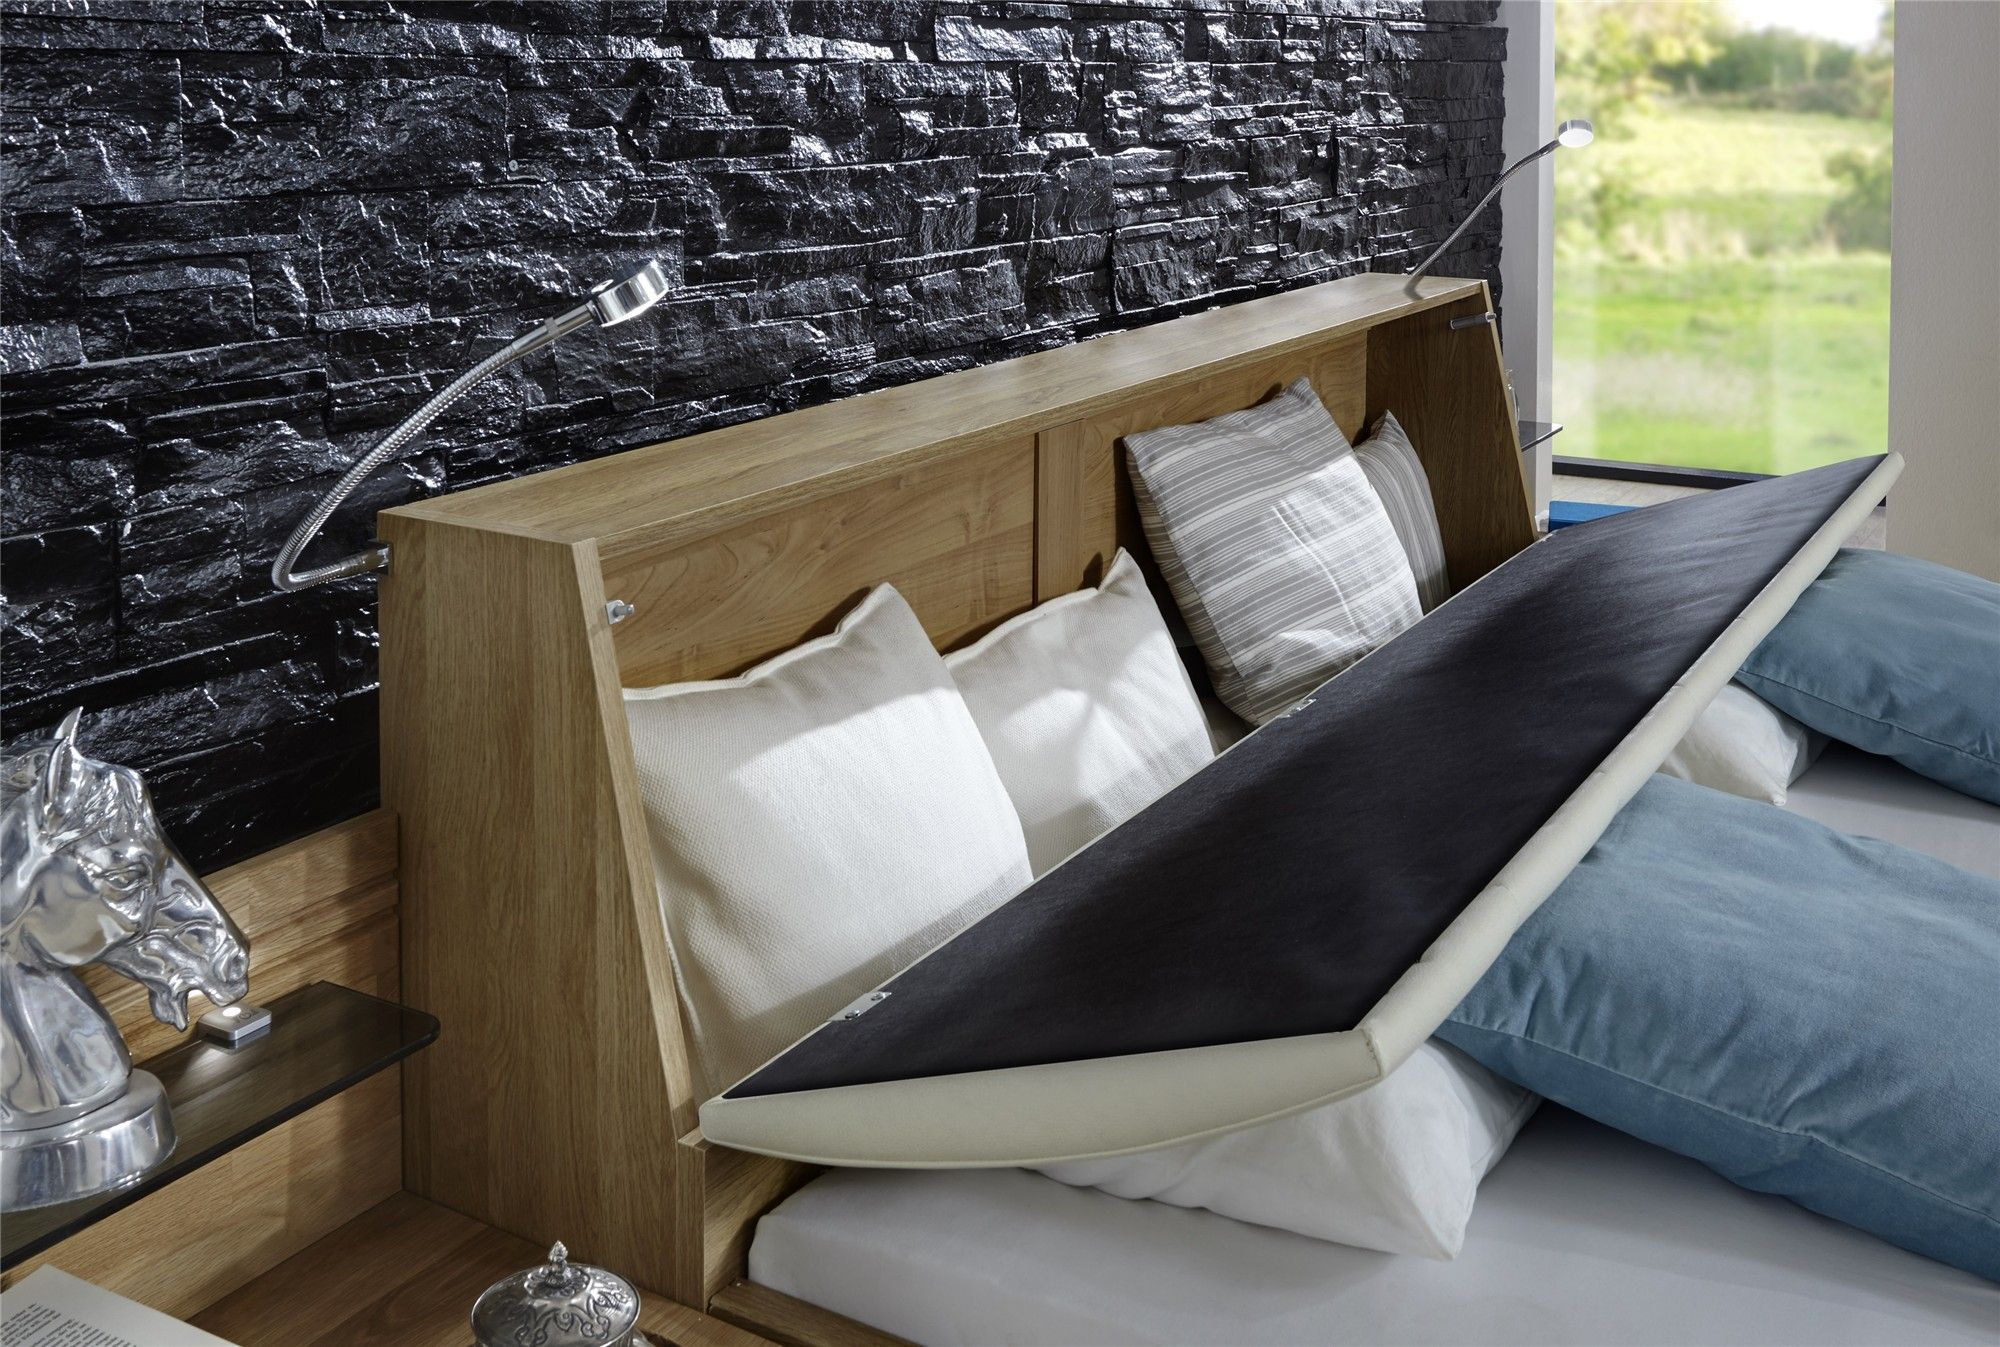 Chiraz Schlafzimmer Gebraucht Head2bed Head2bed On Pinterest